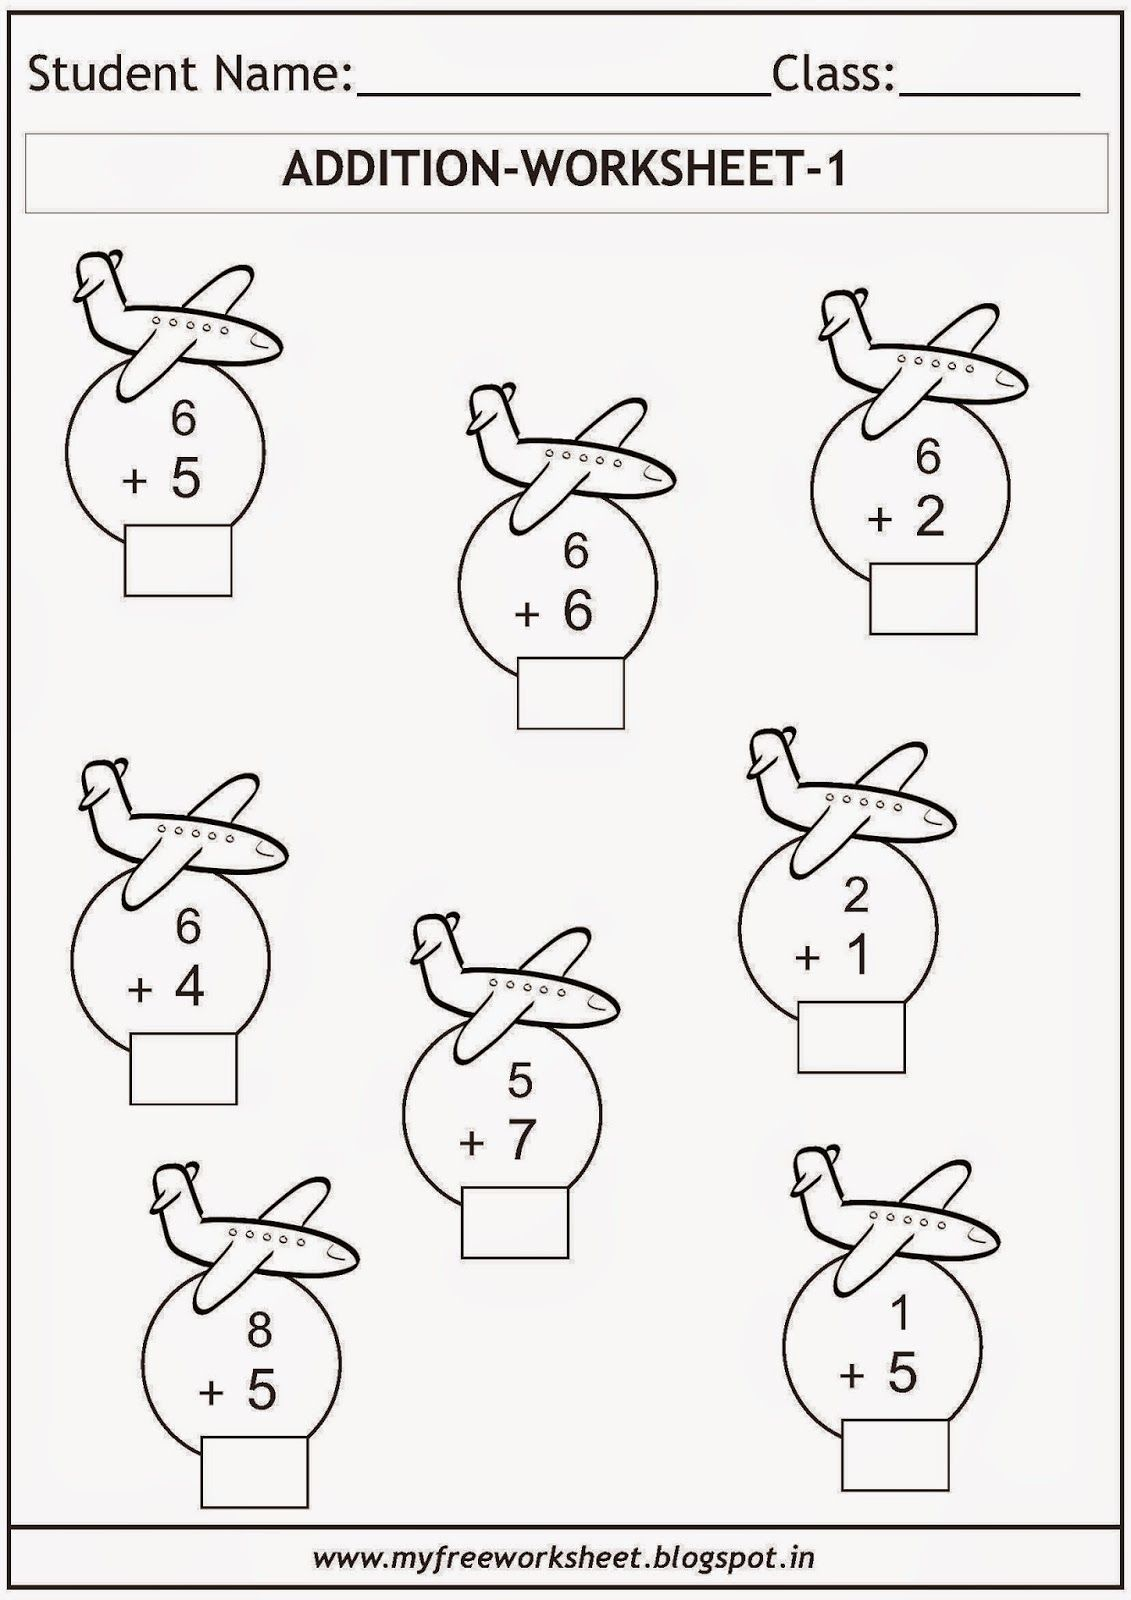 Free printable math worksheets for grade 1 kids. Includes a ...